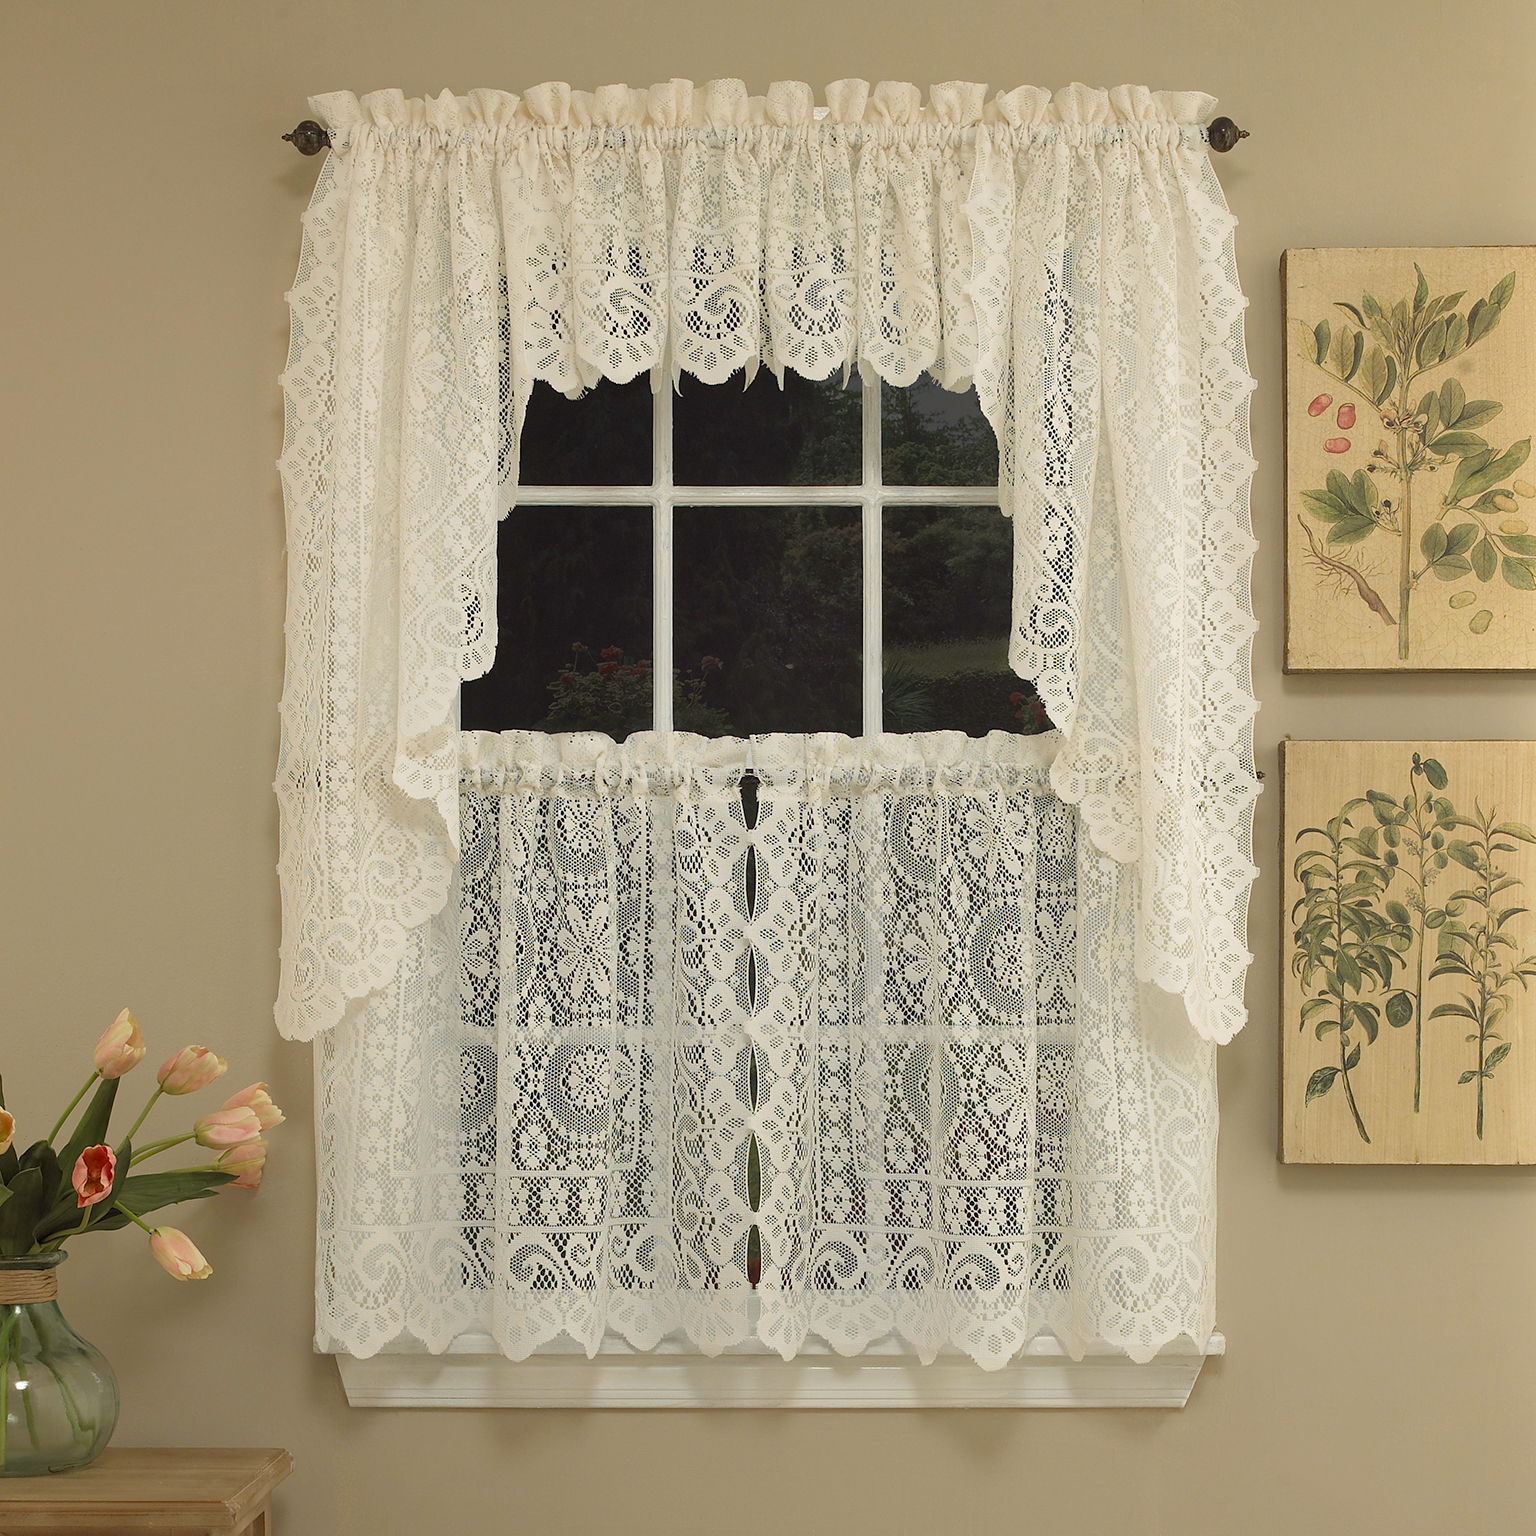 Hopewell Heavy Cream Lace Kitchen Curtain Choice Of Tier Valance Or Swag Ebay